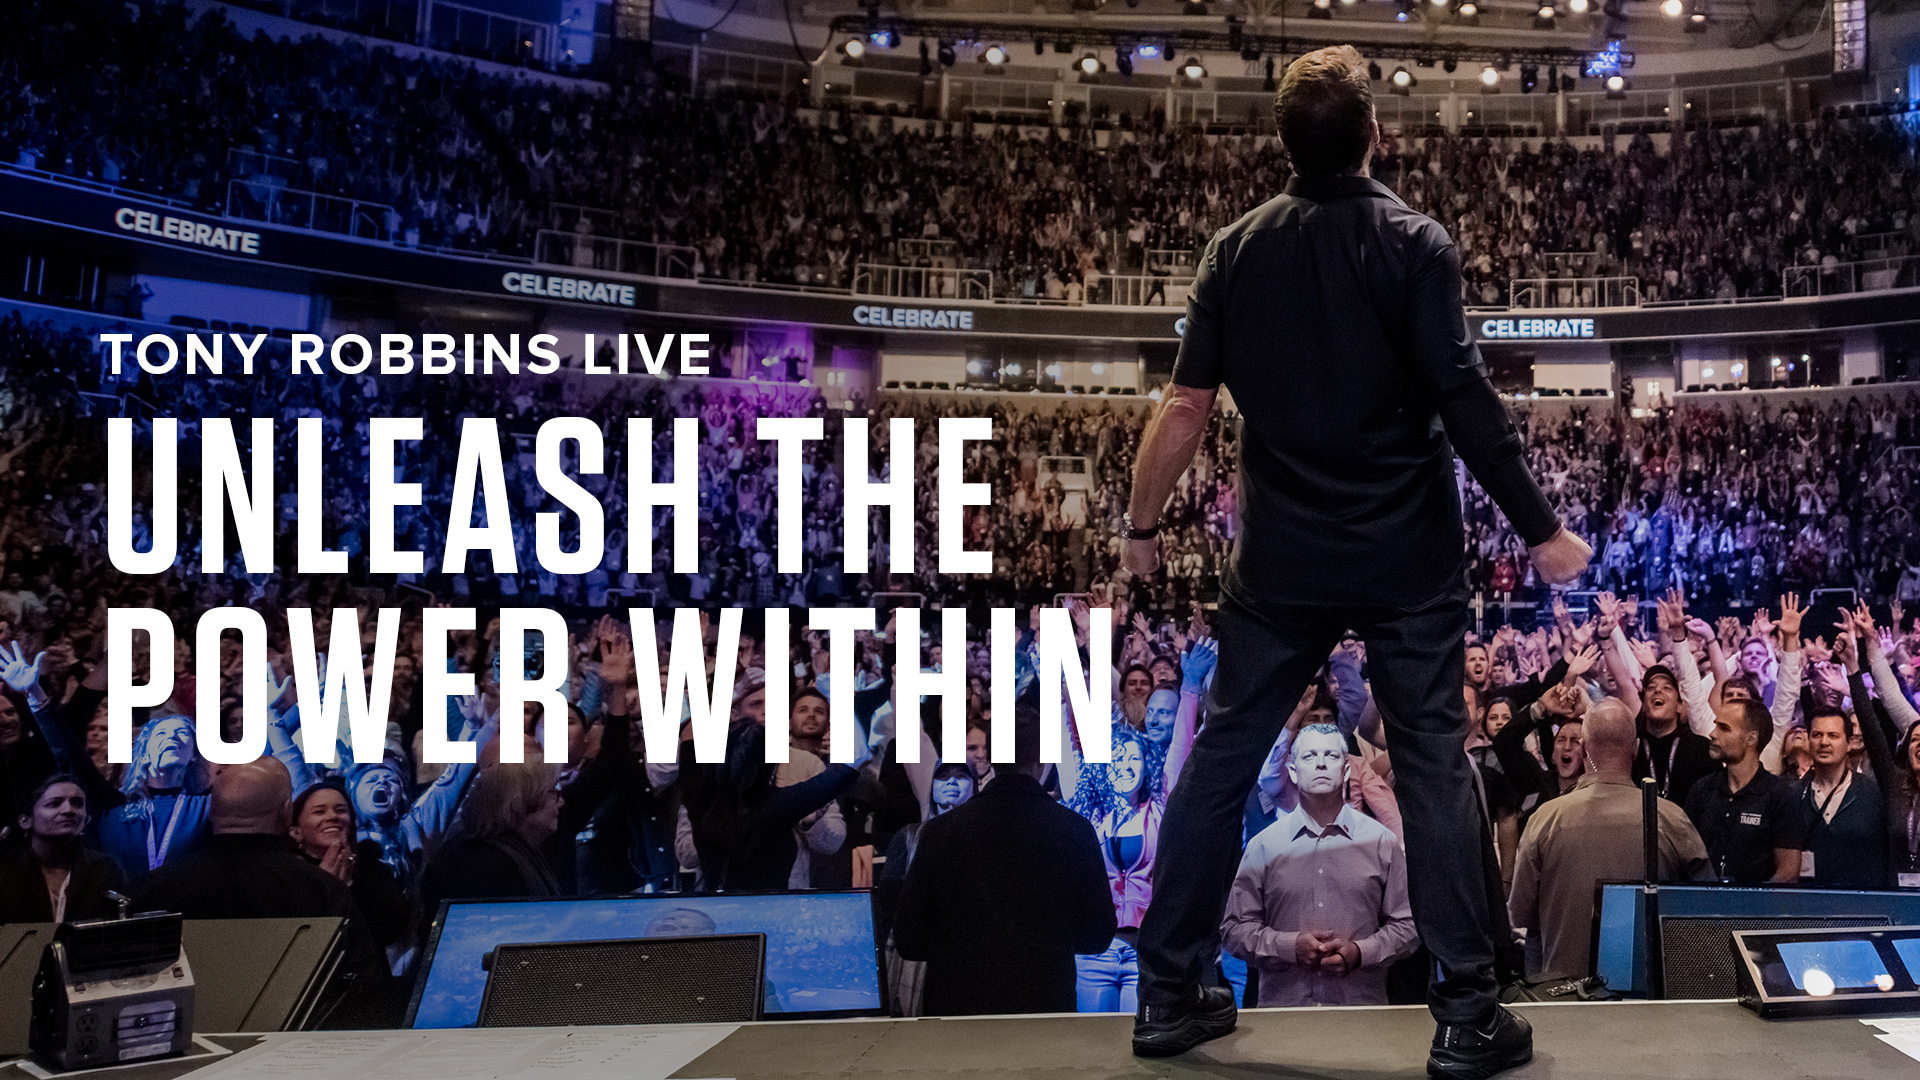 Diamond Premier Ticket for Unleash the Power Within - Newark 11/8/18 to 11/11/18